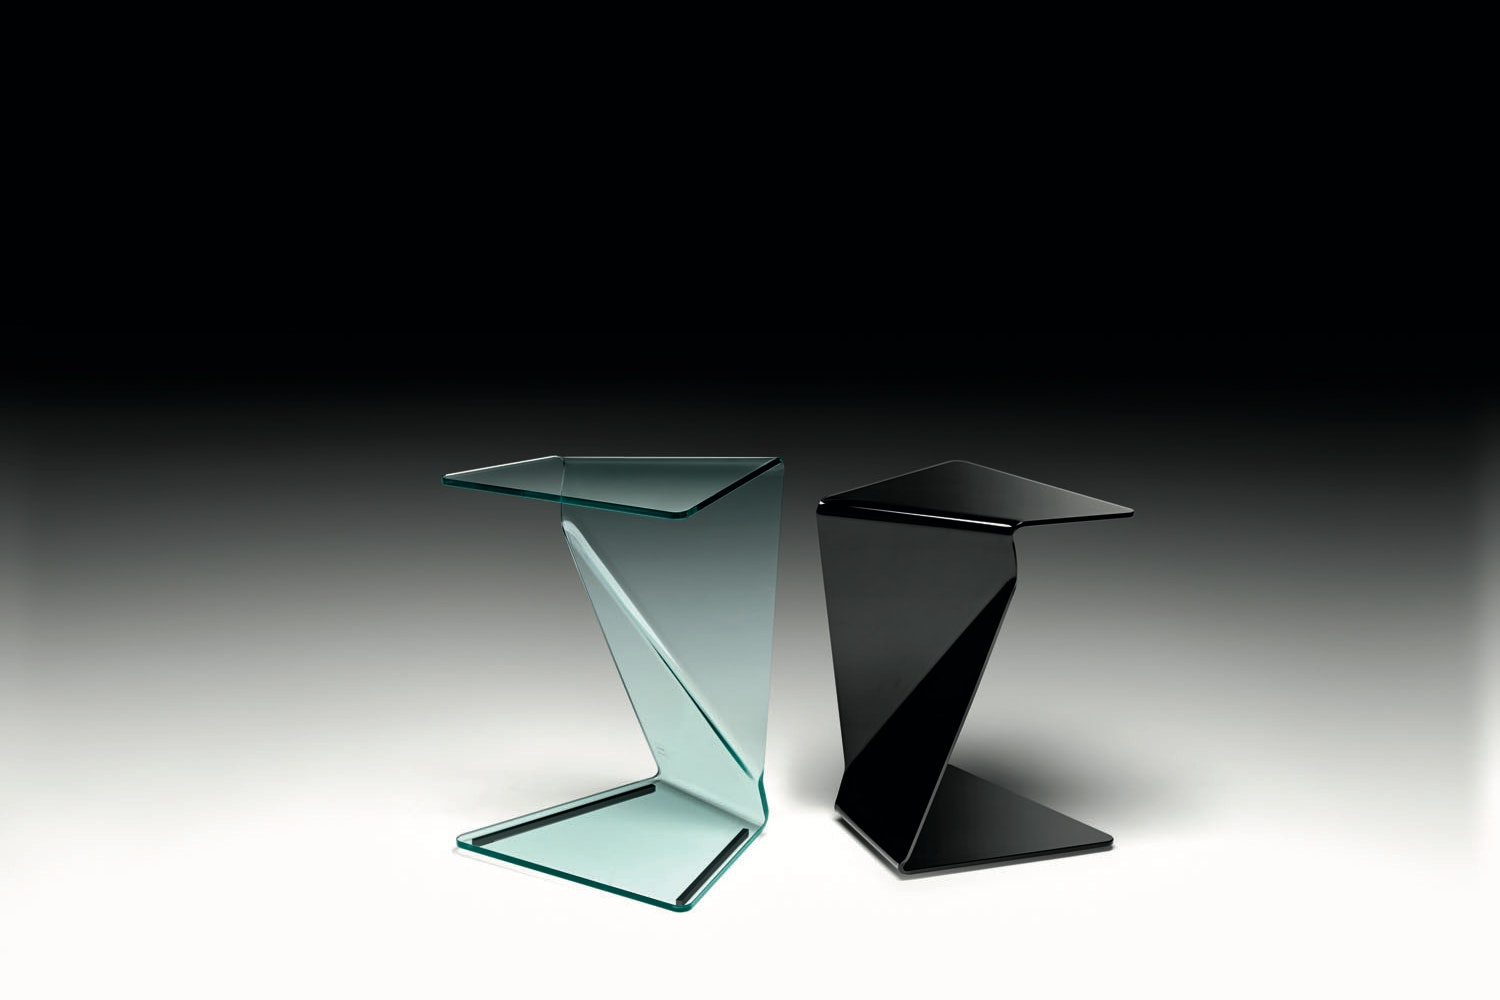 Sigmy Side Table by Aquili Alberg for Fiam Italia